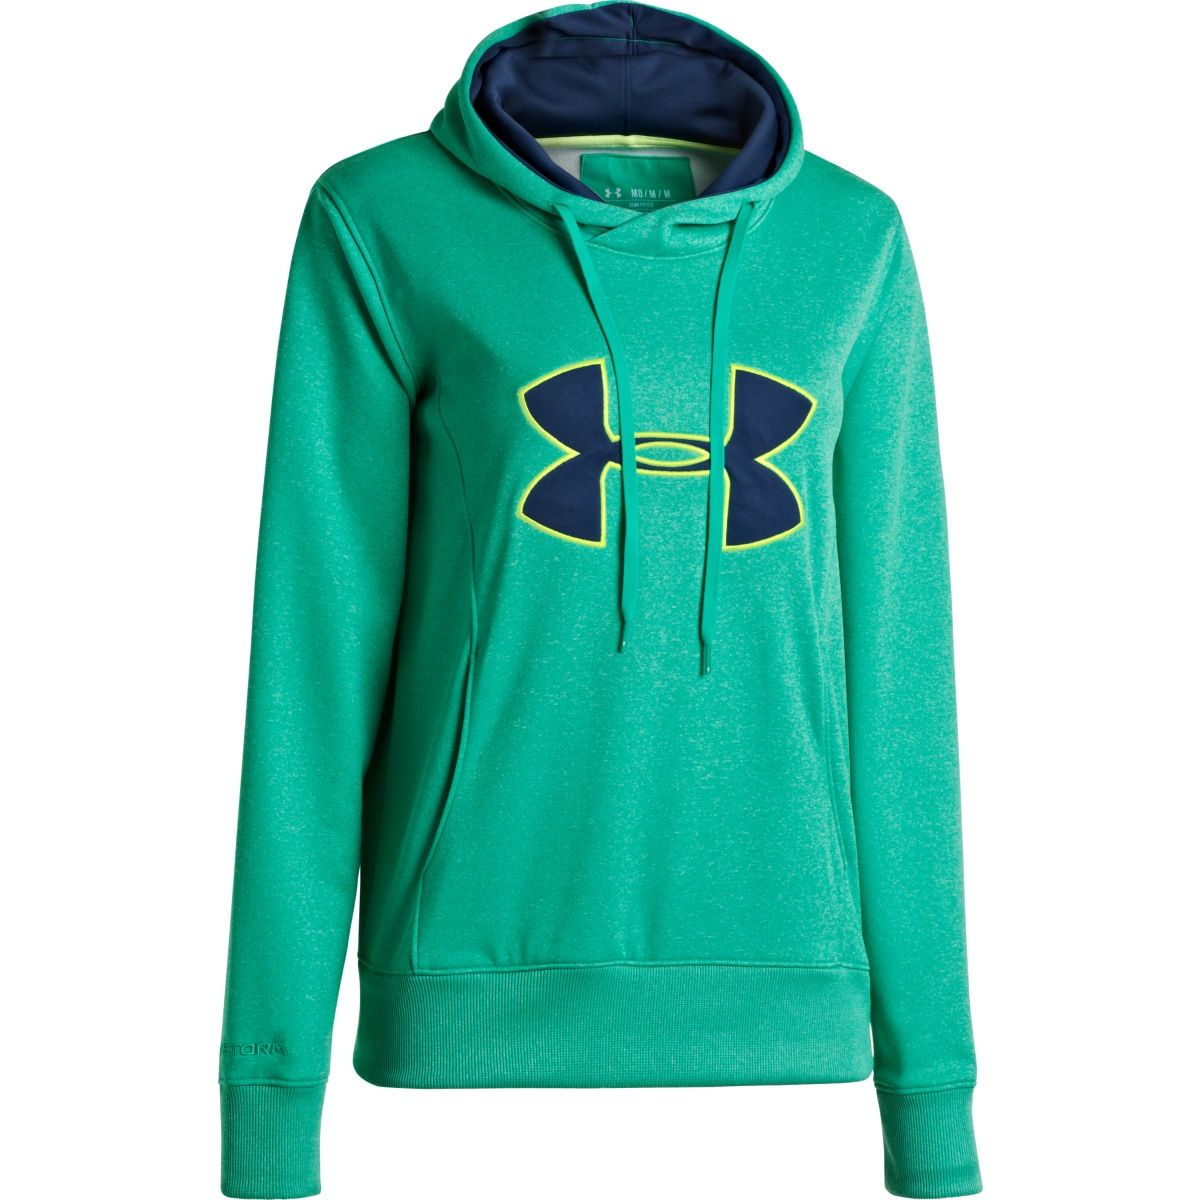 Under armour womens hoodies sale